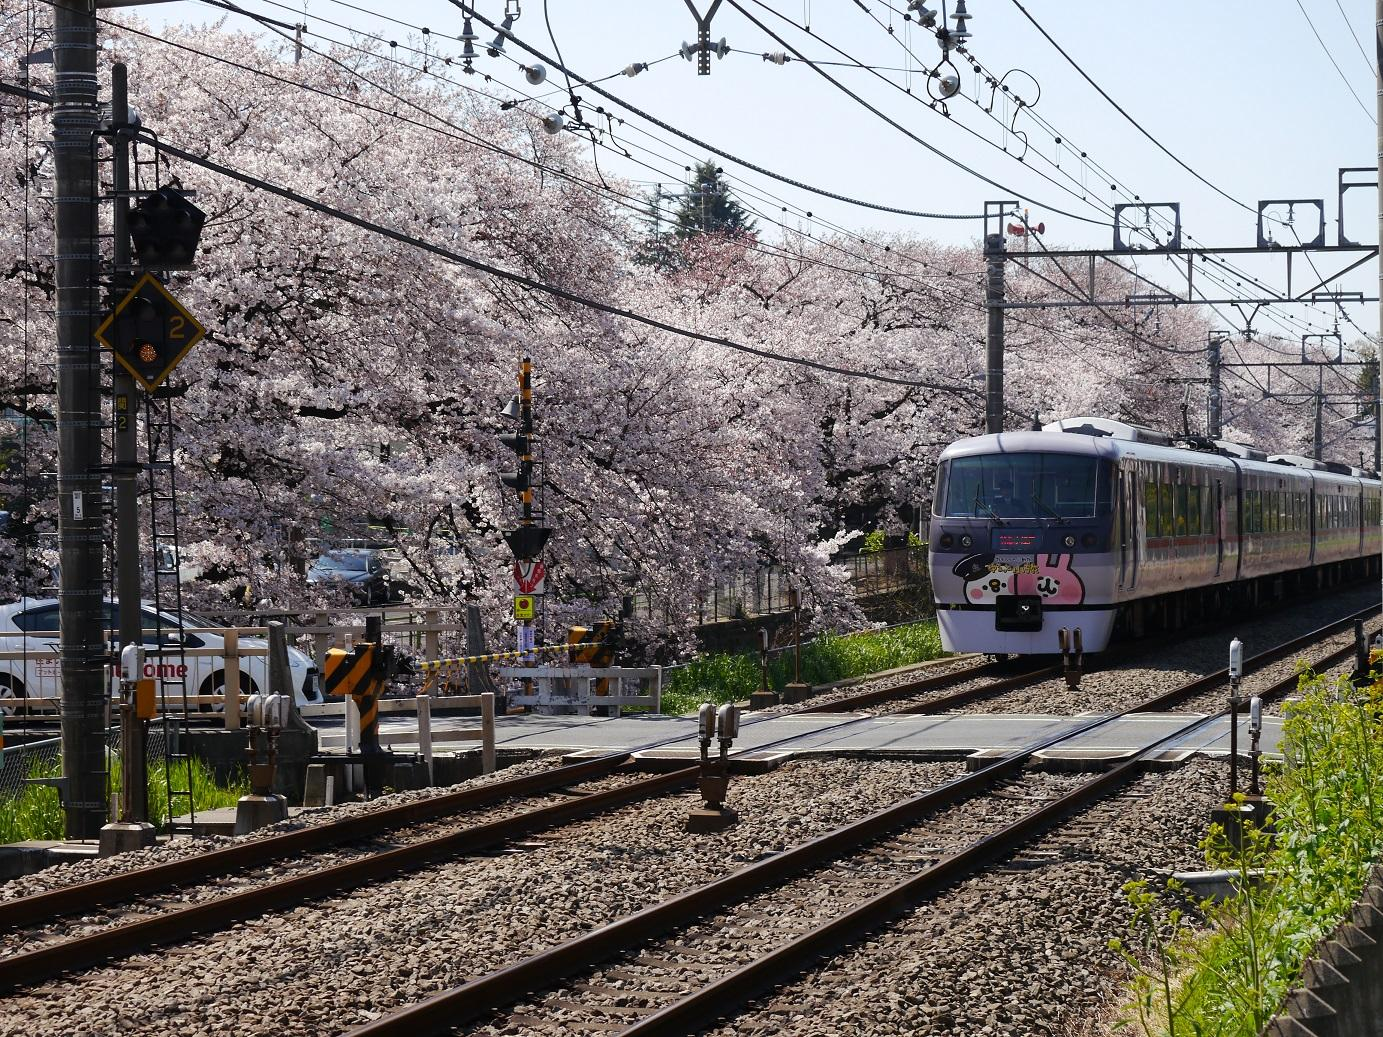 Cherry blossoms and image of Seibu line drawing